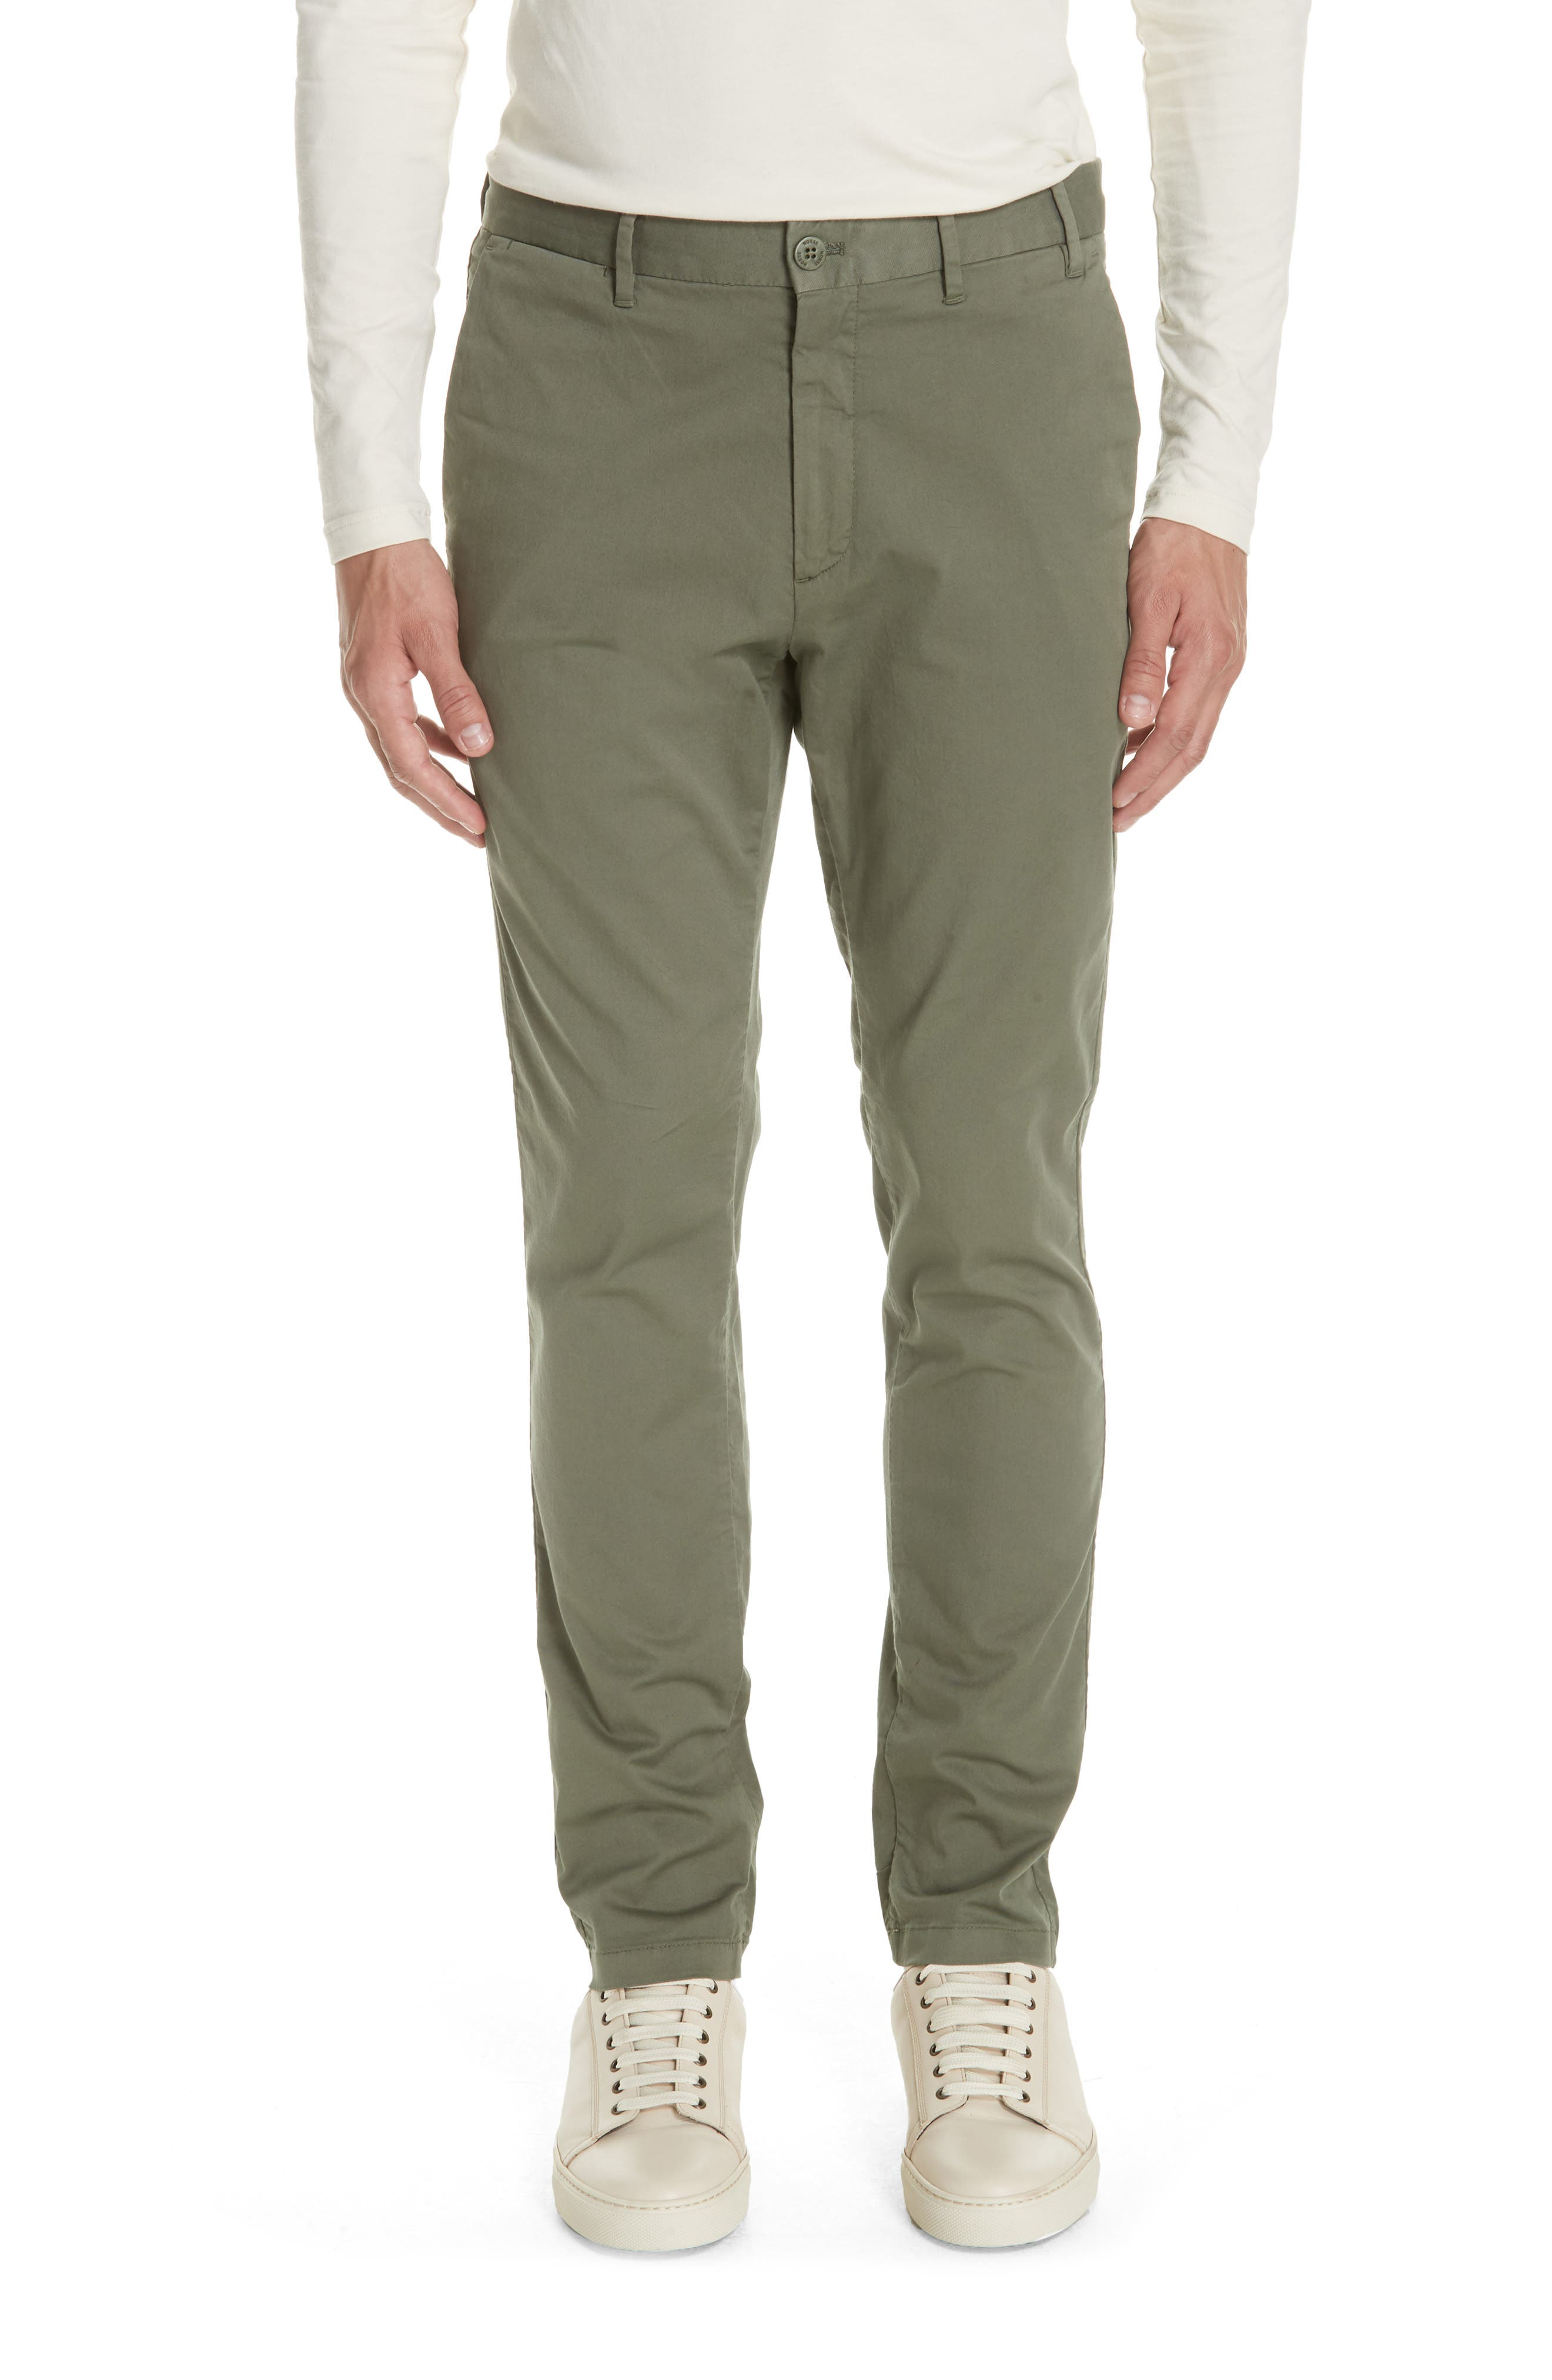 Aros Slim Fit Stretch Twill Pants,                         Main,                         color, Dried Olive